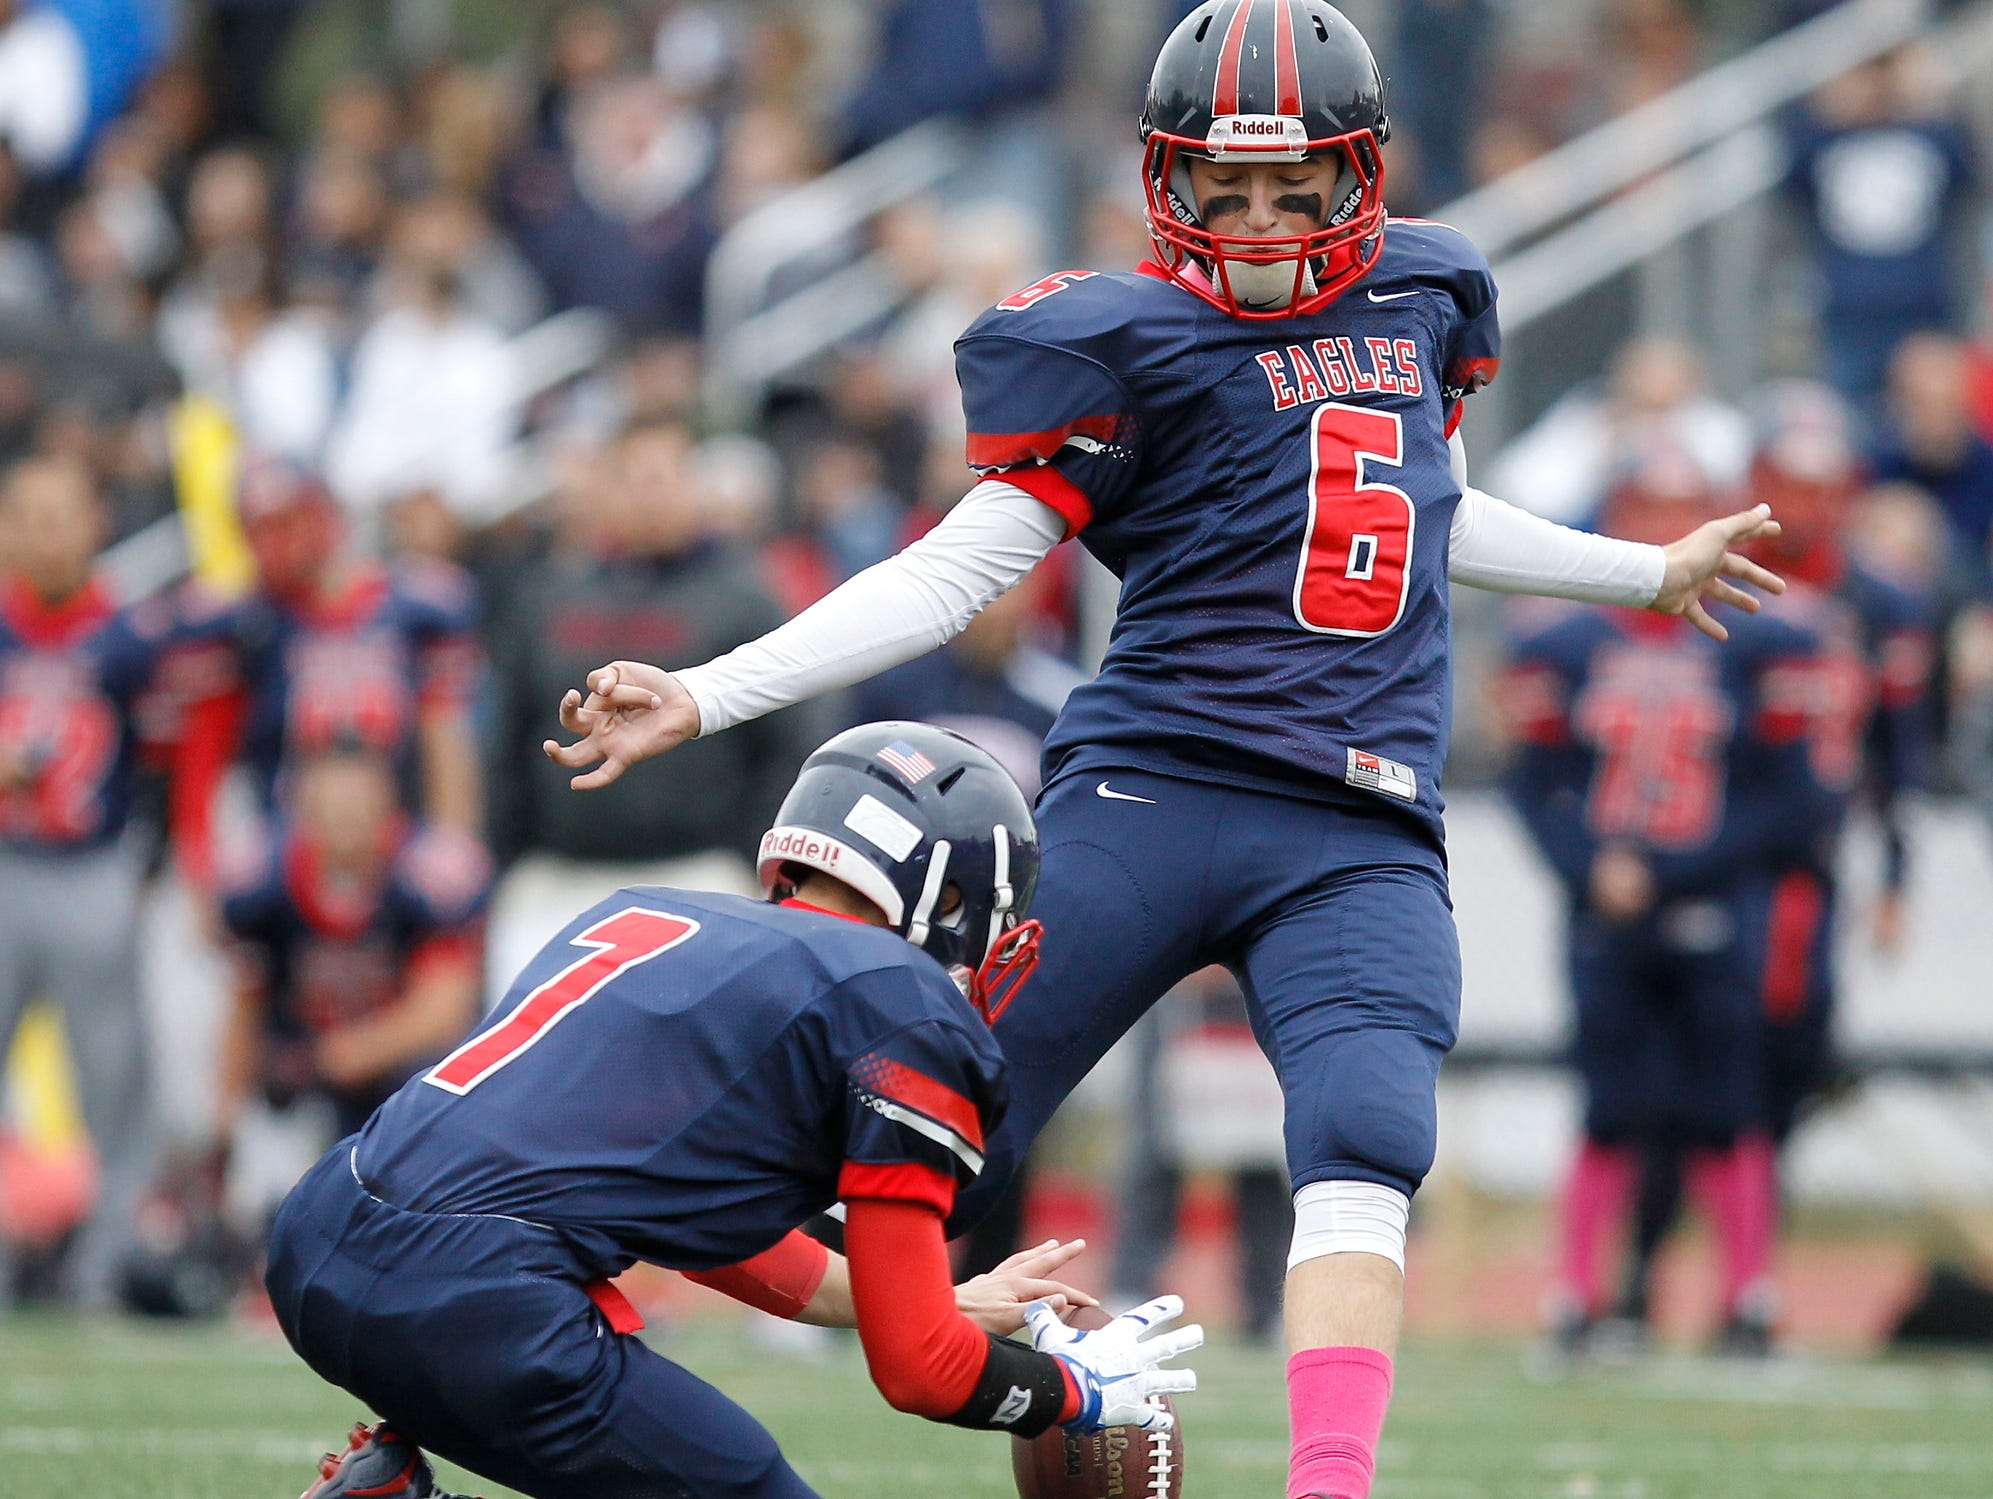 Eastchester's Jacob Risi (7) holds the ball as kicker Aidan Clemente (6) kicks an extra point during a varsity football game against John Jay Cross River at Eastchester High School on Saturday, Oct. 24, 2015.